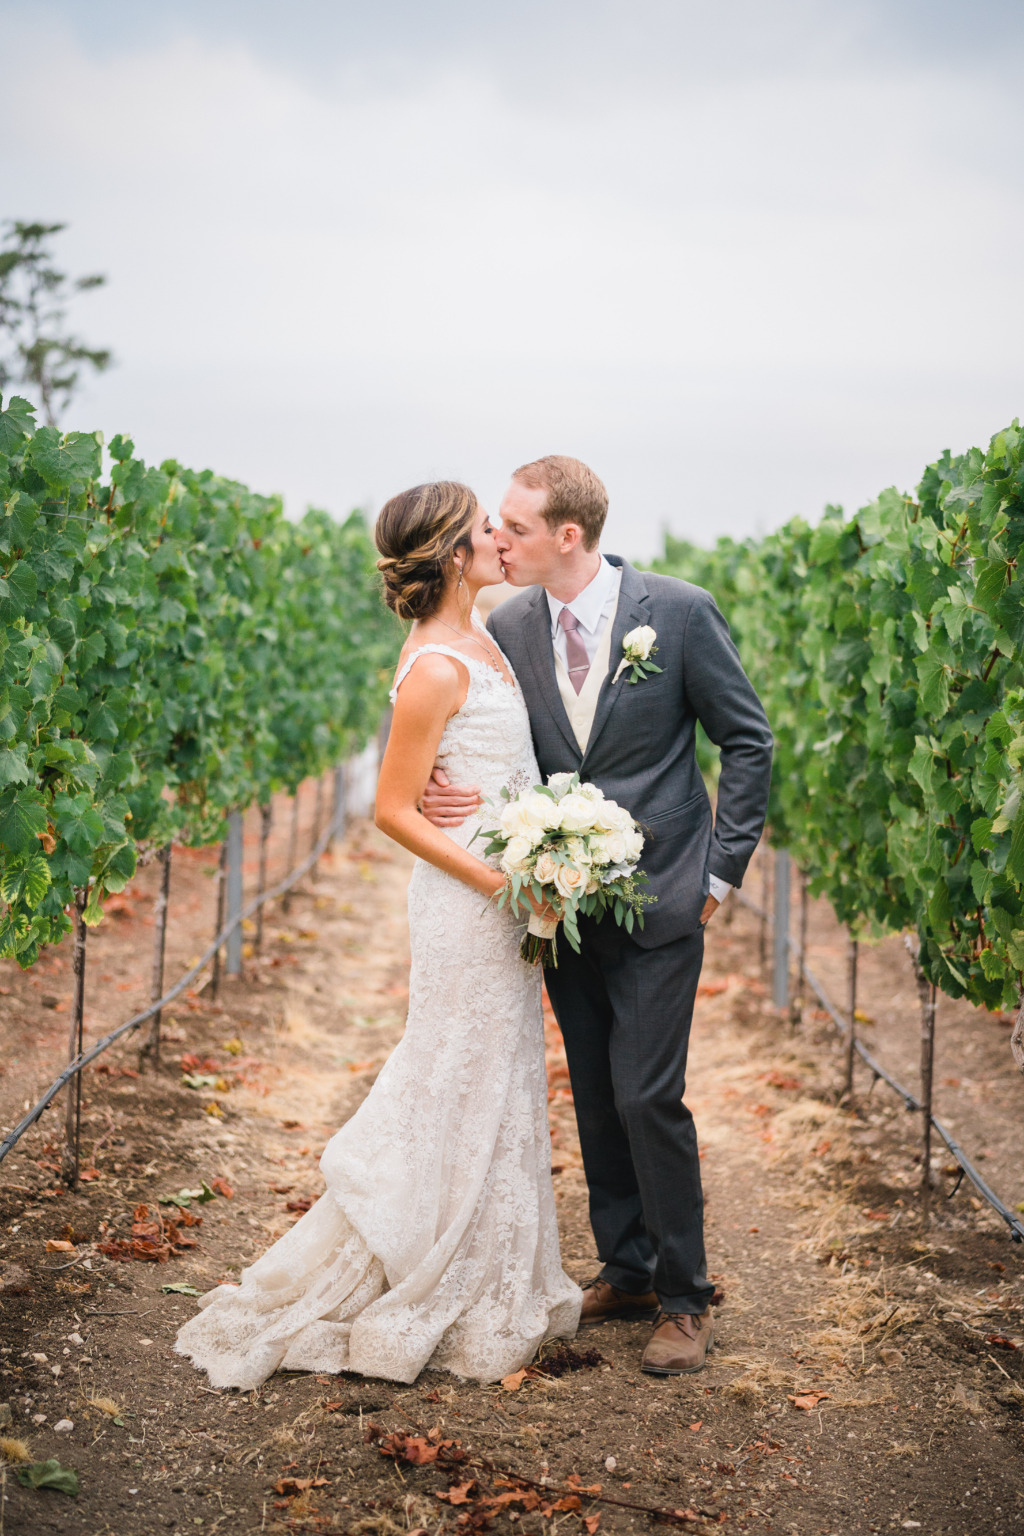 Catalina View Gardens is a truly elegant wedding location with vineyard pathways and panoramic views of the Pacific Ocean. The ceremony